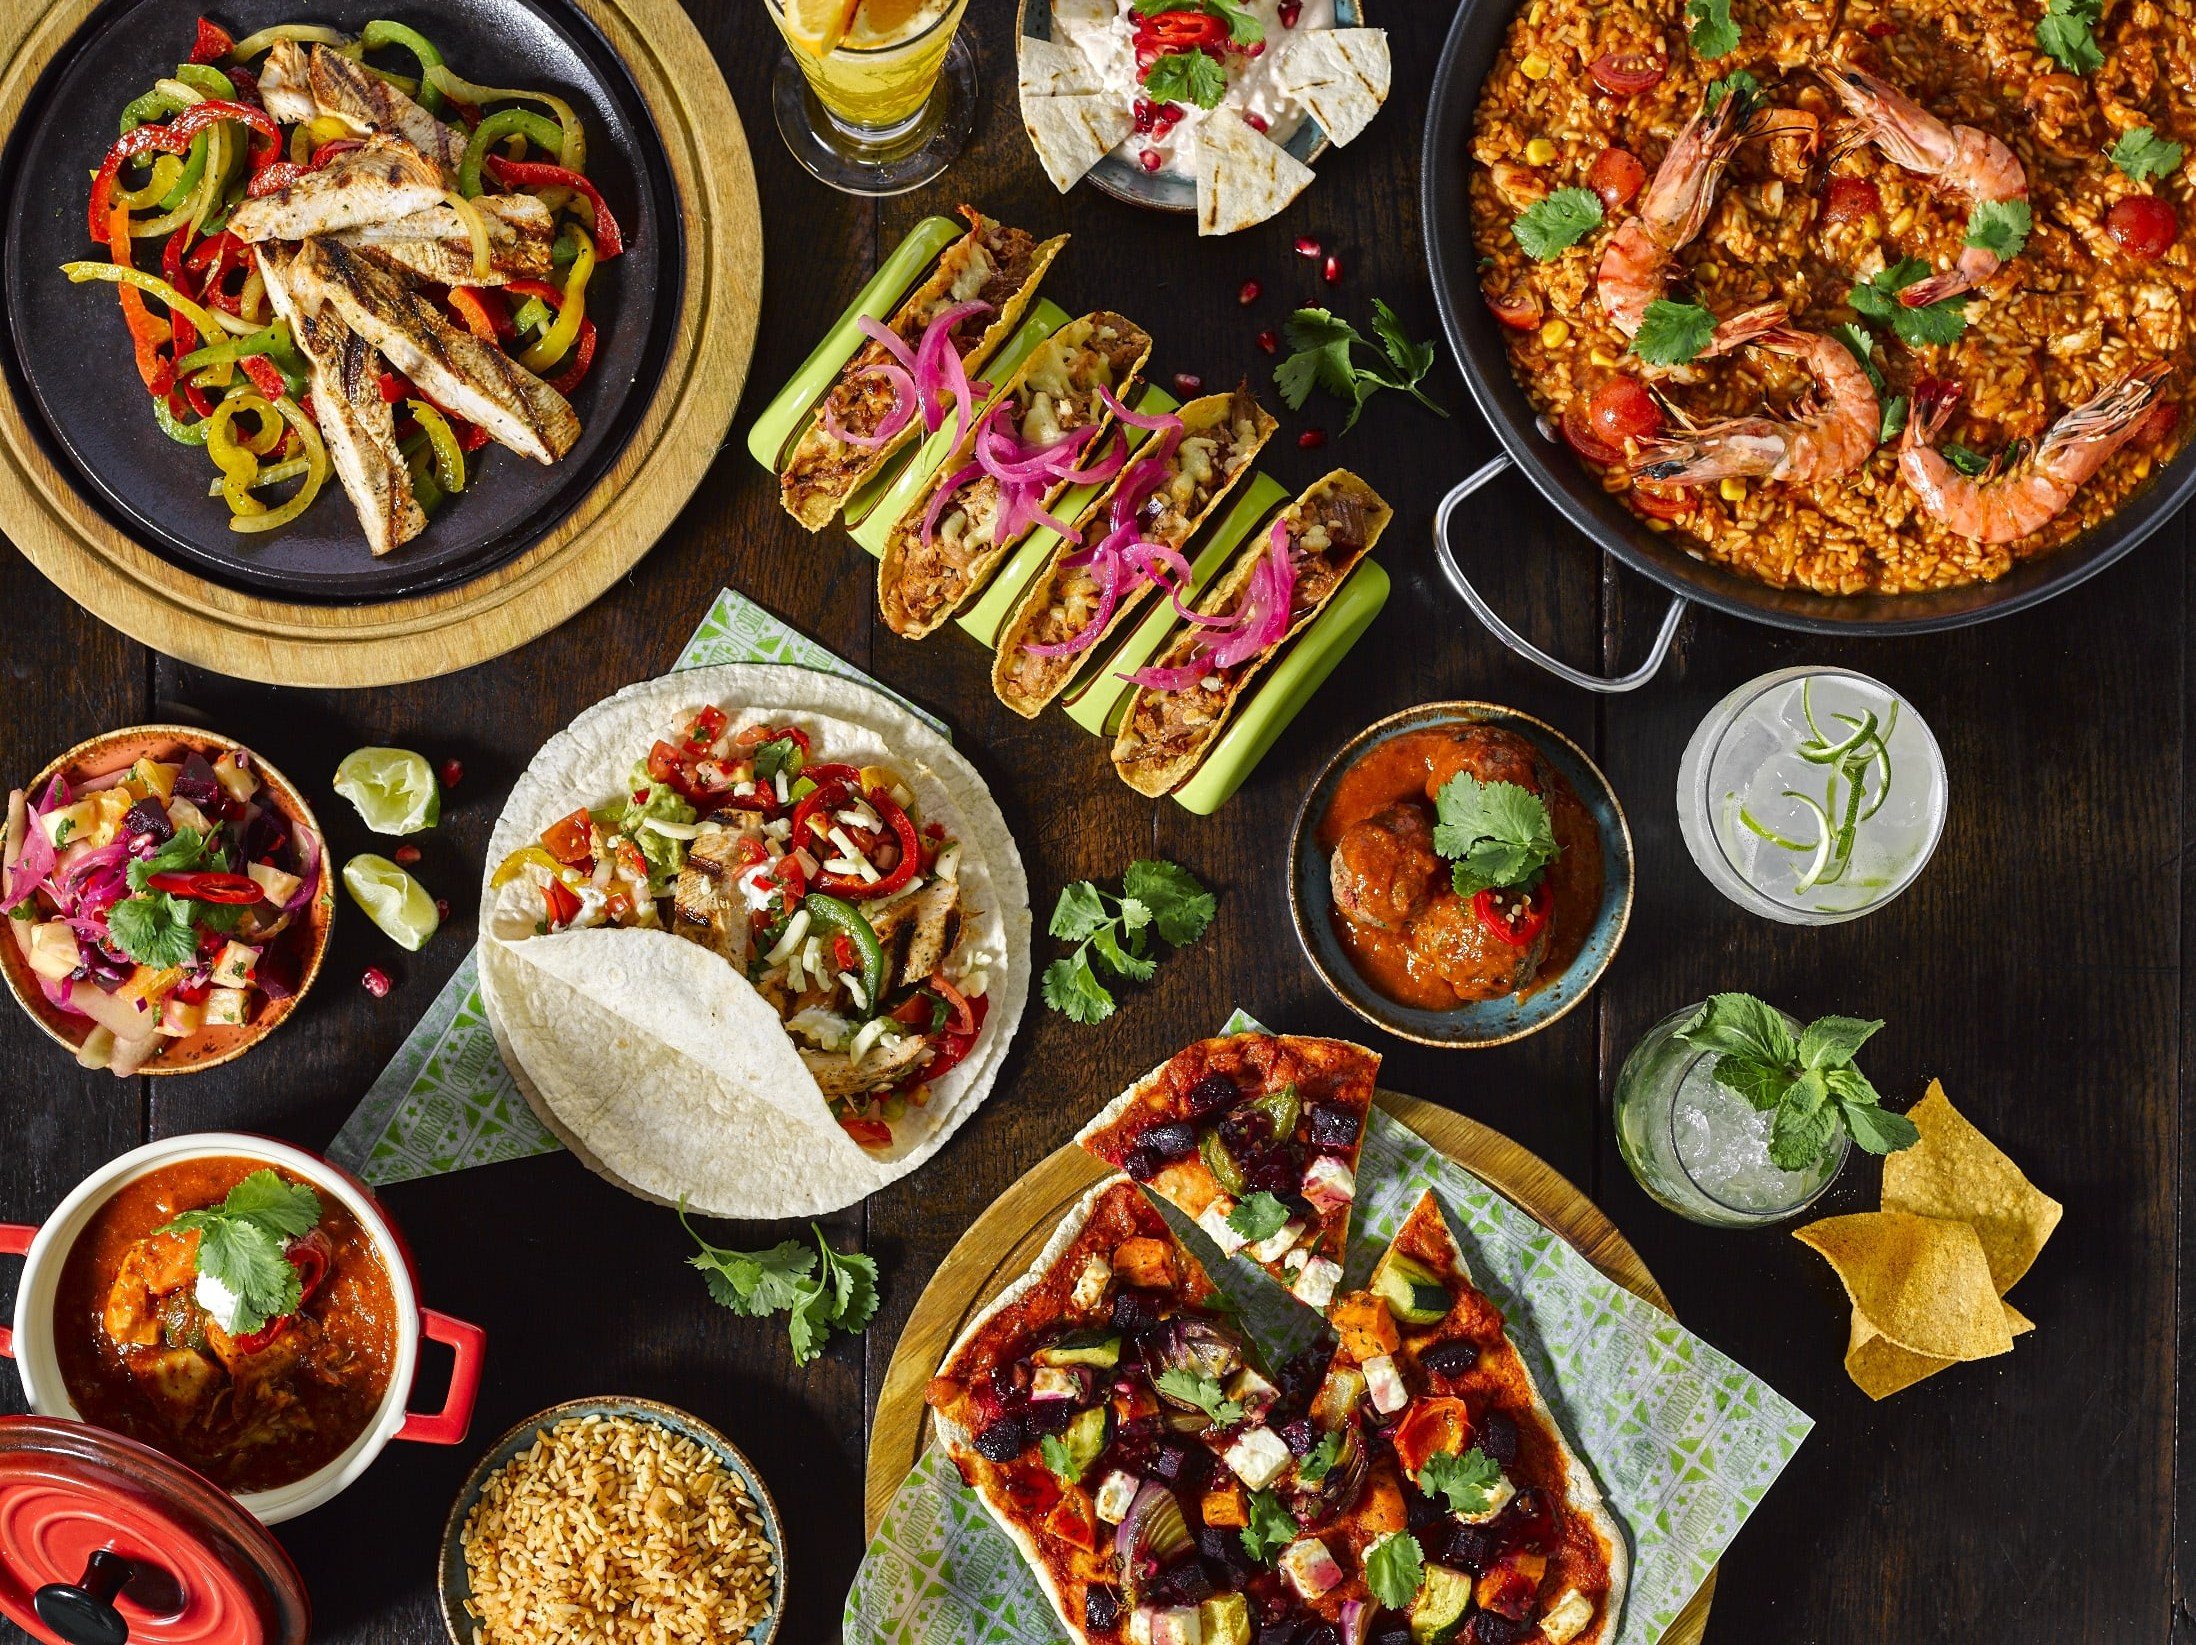 Chiquito - South Ruislip - Greater London